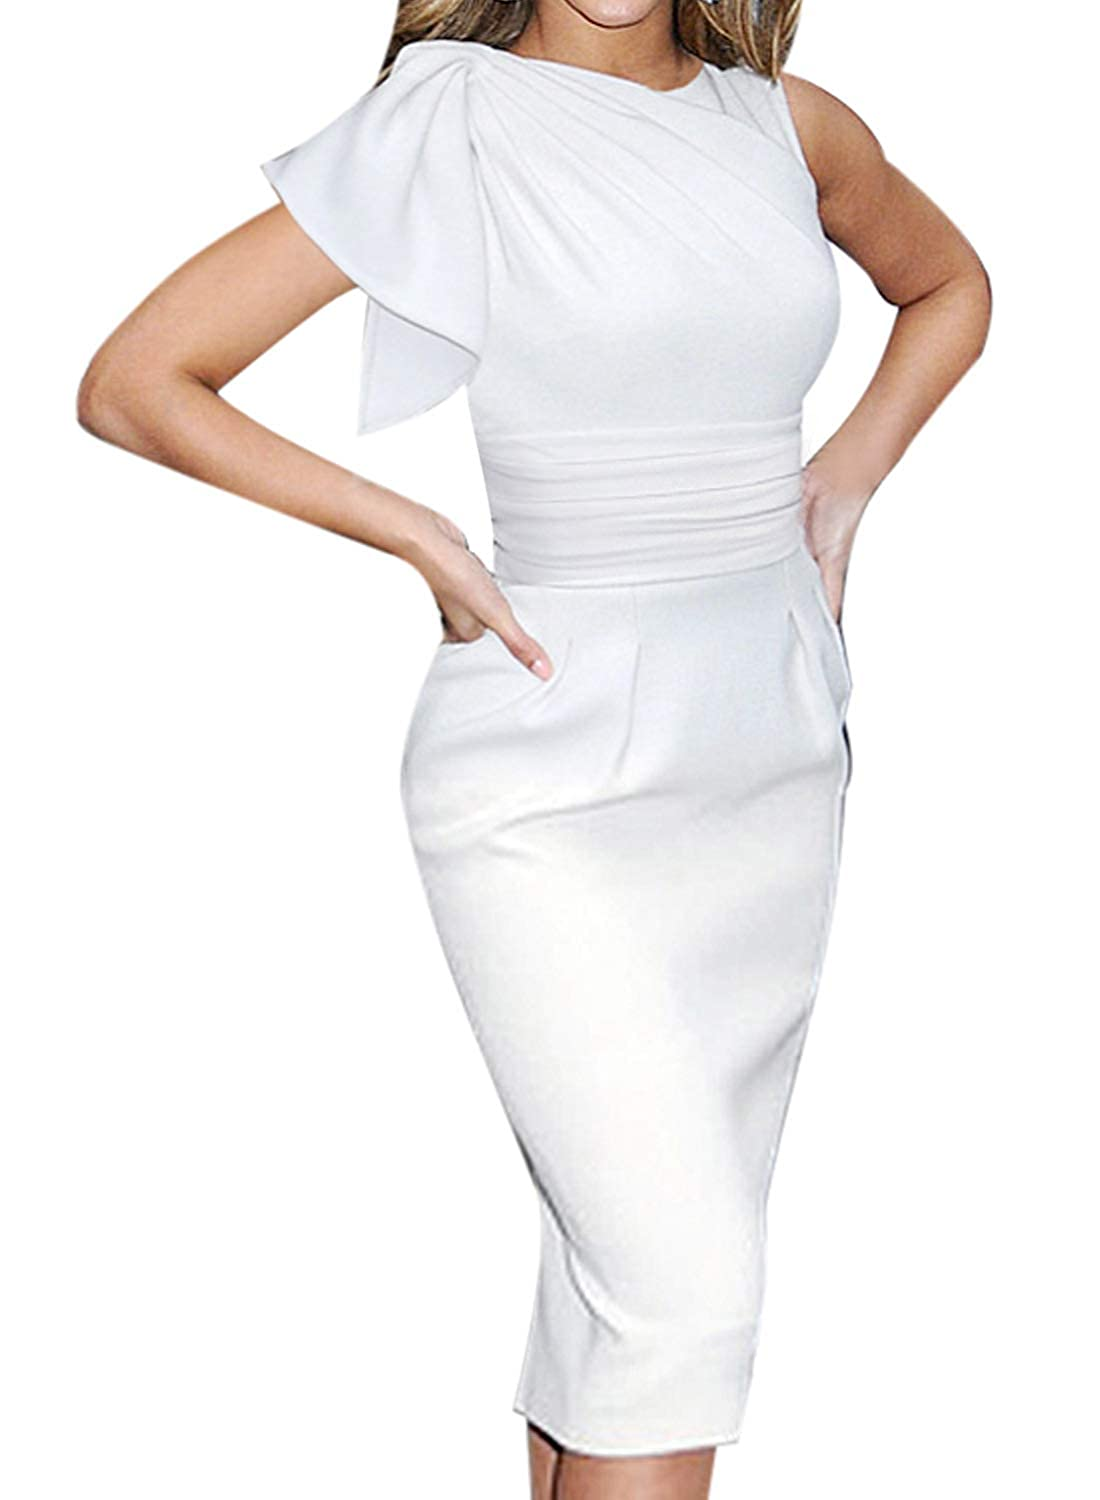 Off White VfEmage Women's Celebrity Elegant Ruched Wear to Work Party Prom Bodycon Dress